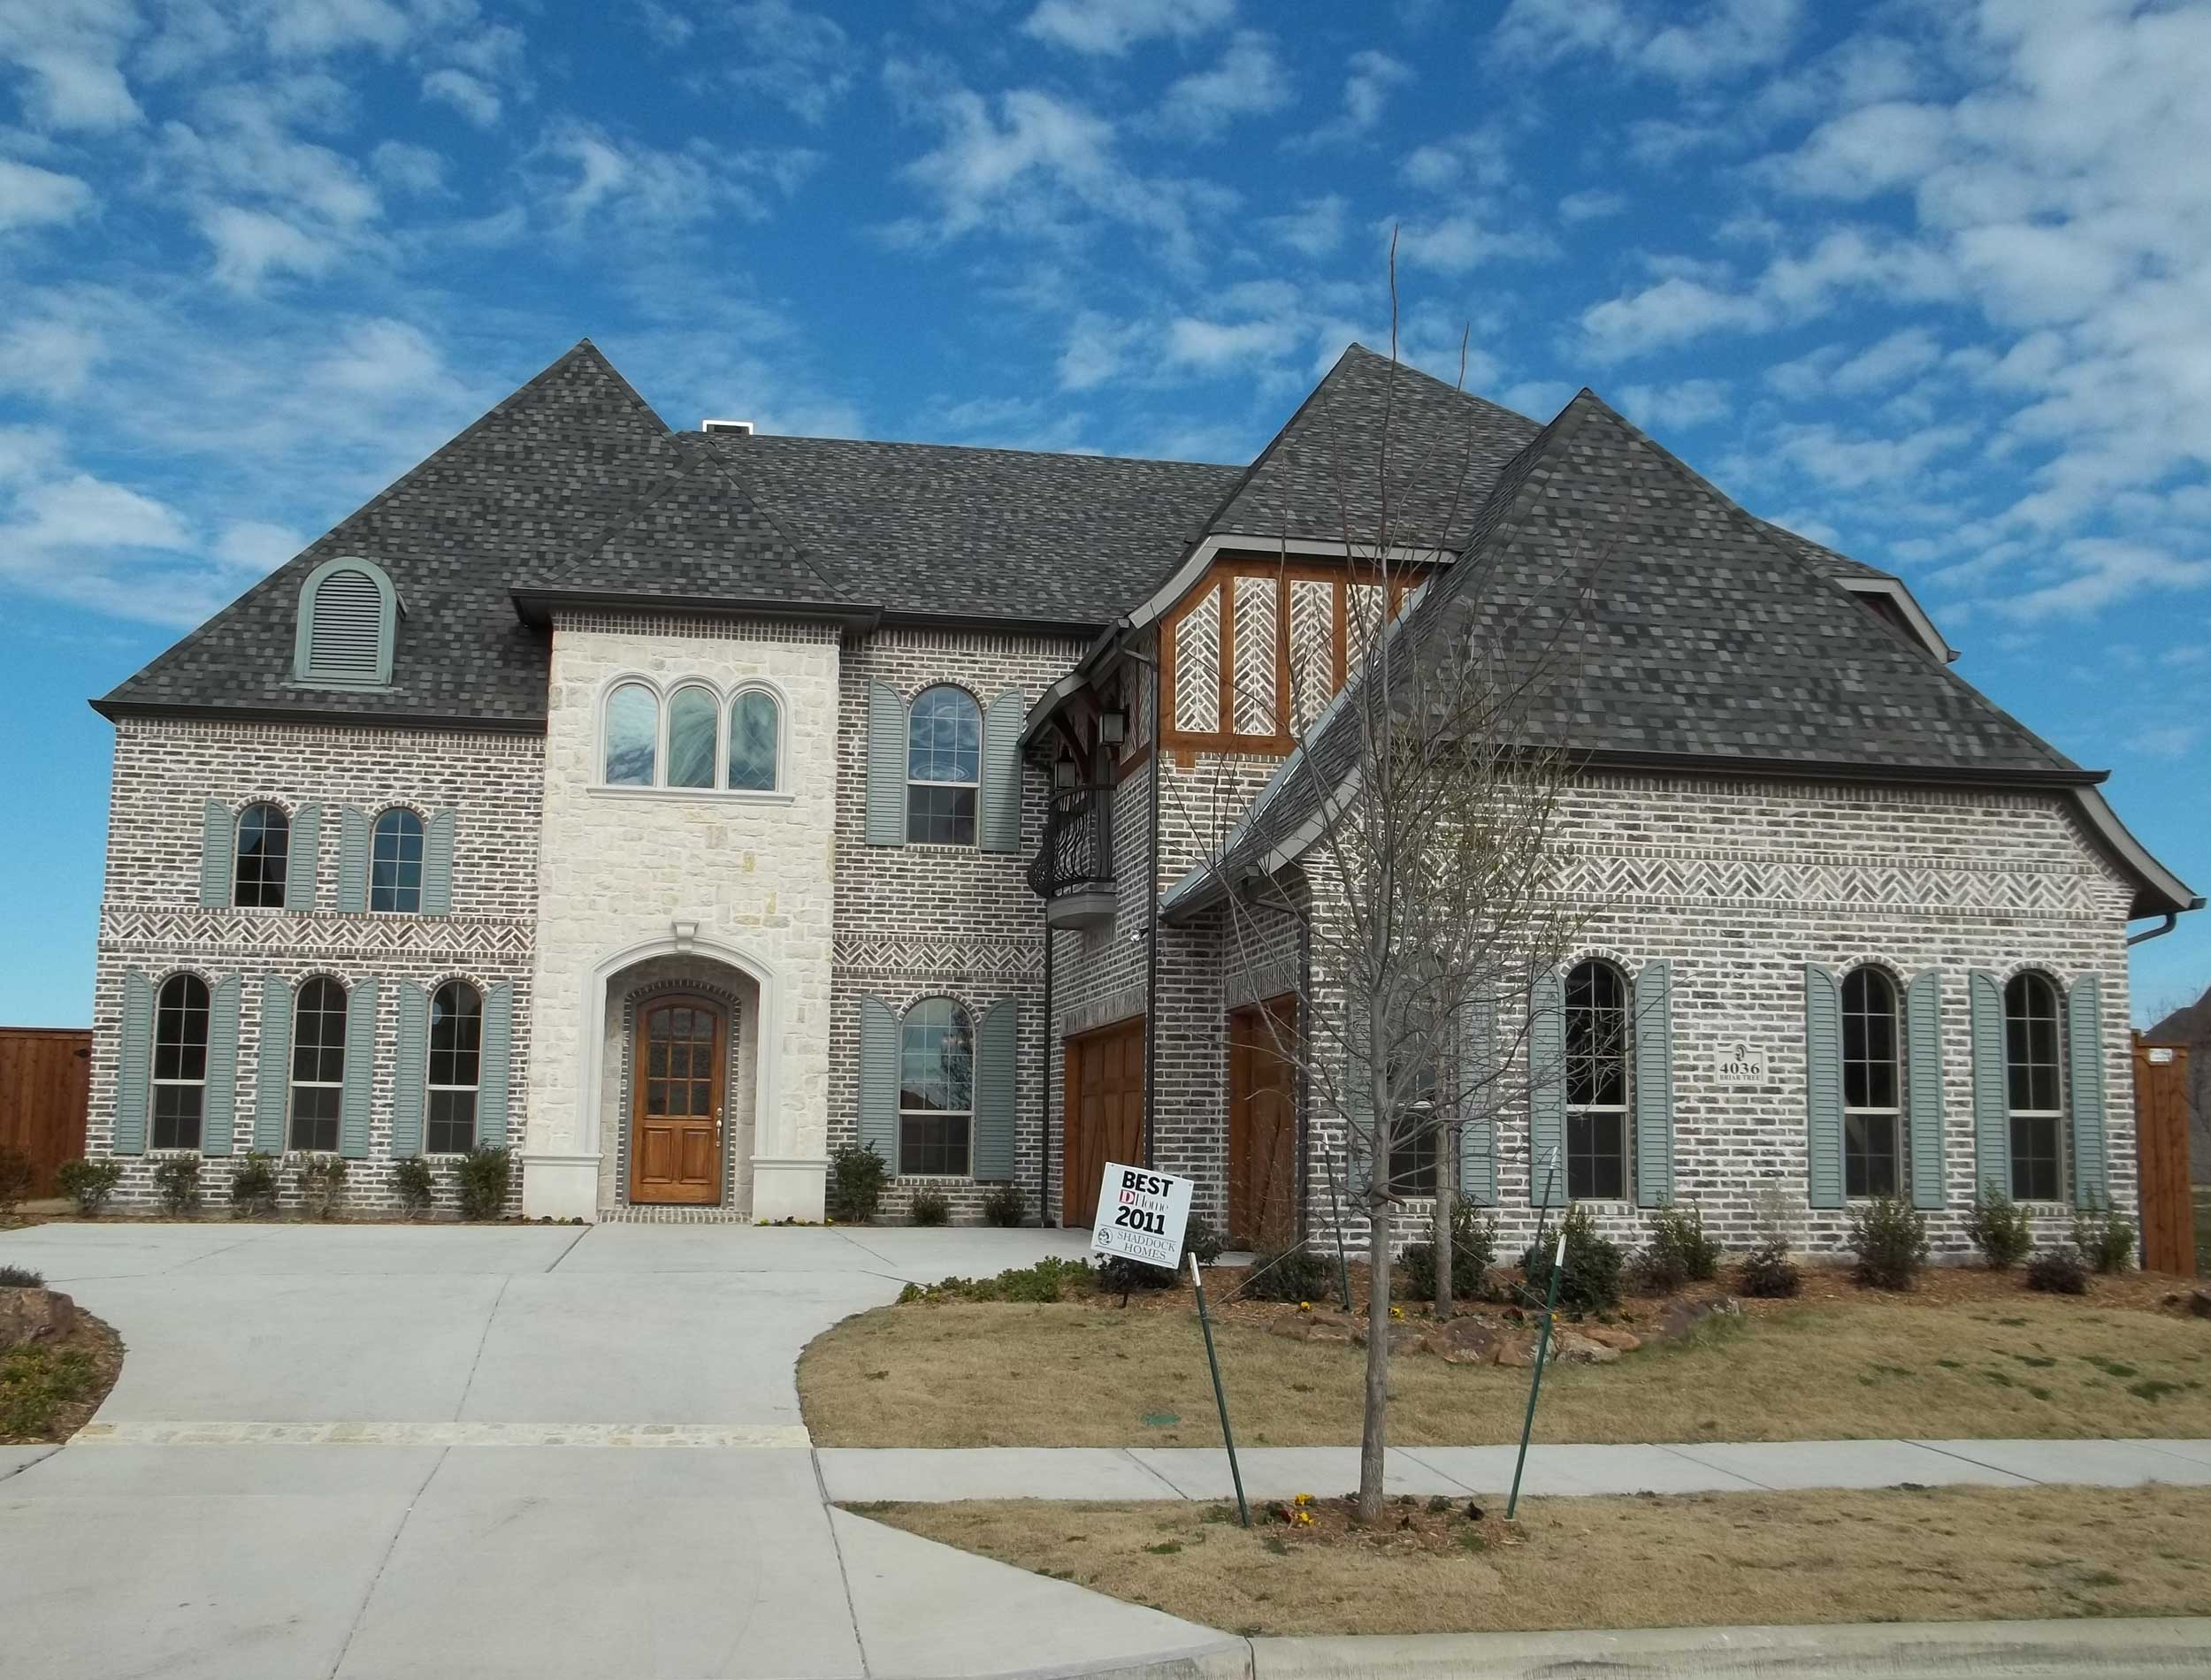 packer brick supplier of custom brick and stone for custom homes